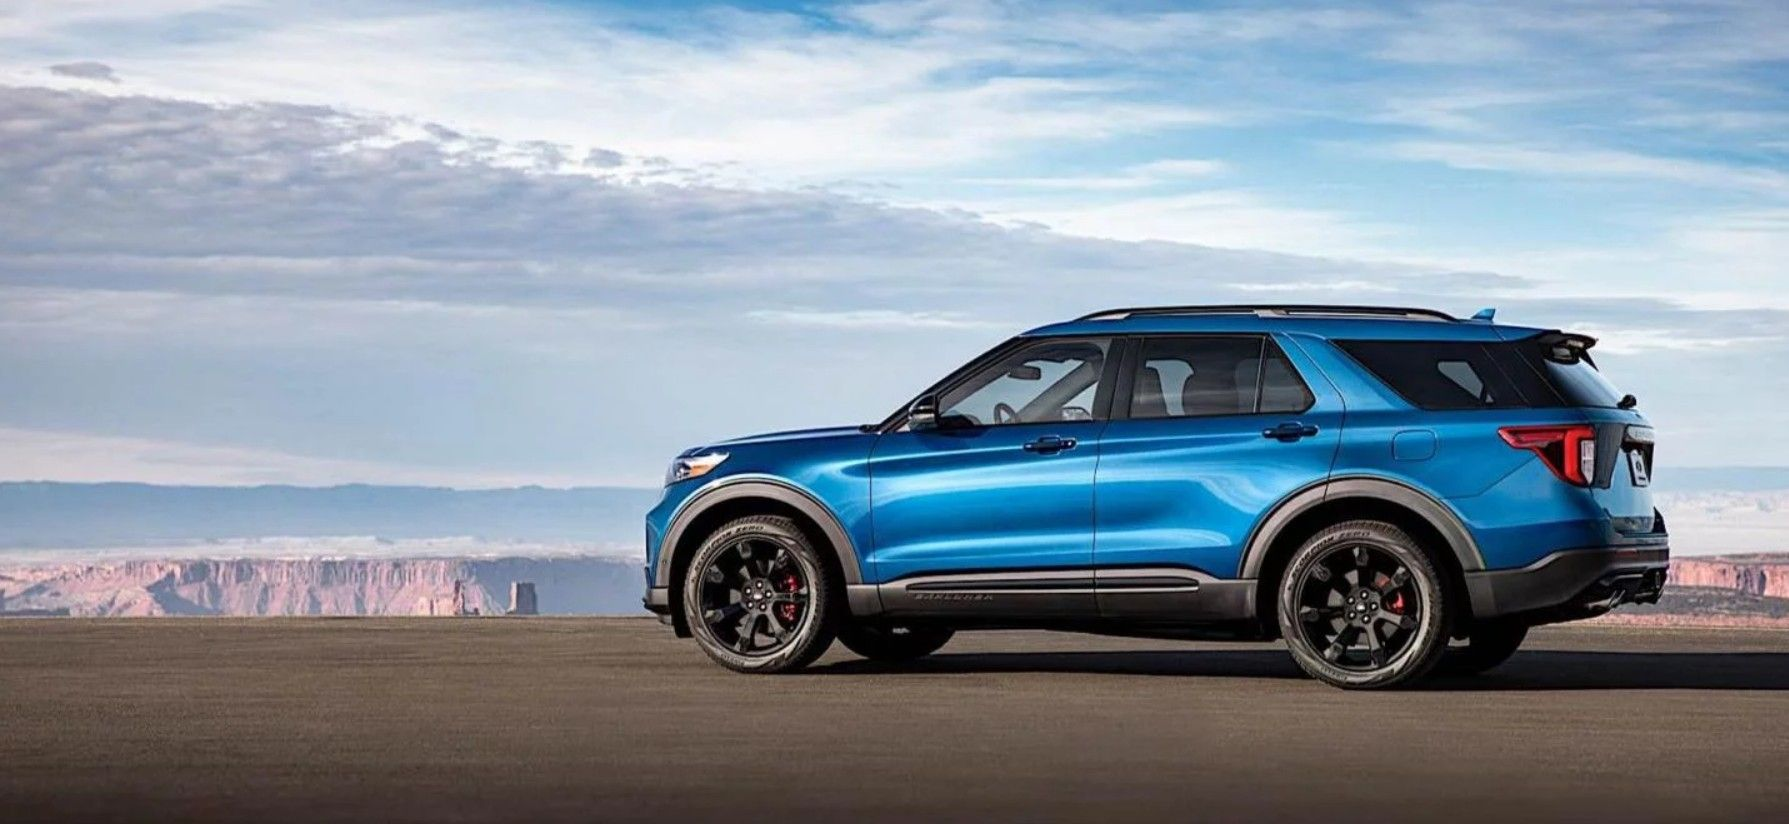 2020 Ford Explorer ST Adds Performance To Your Next